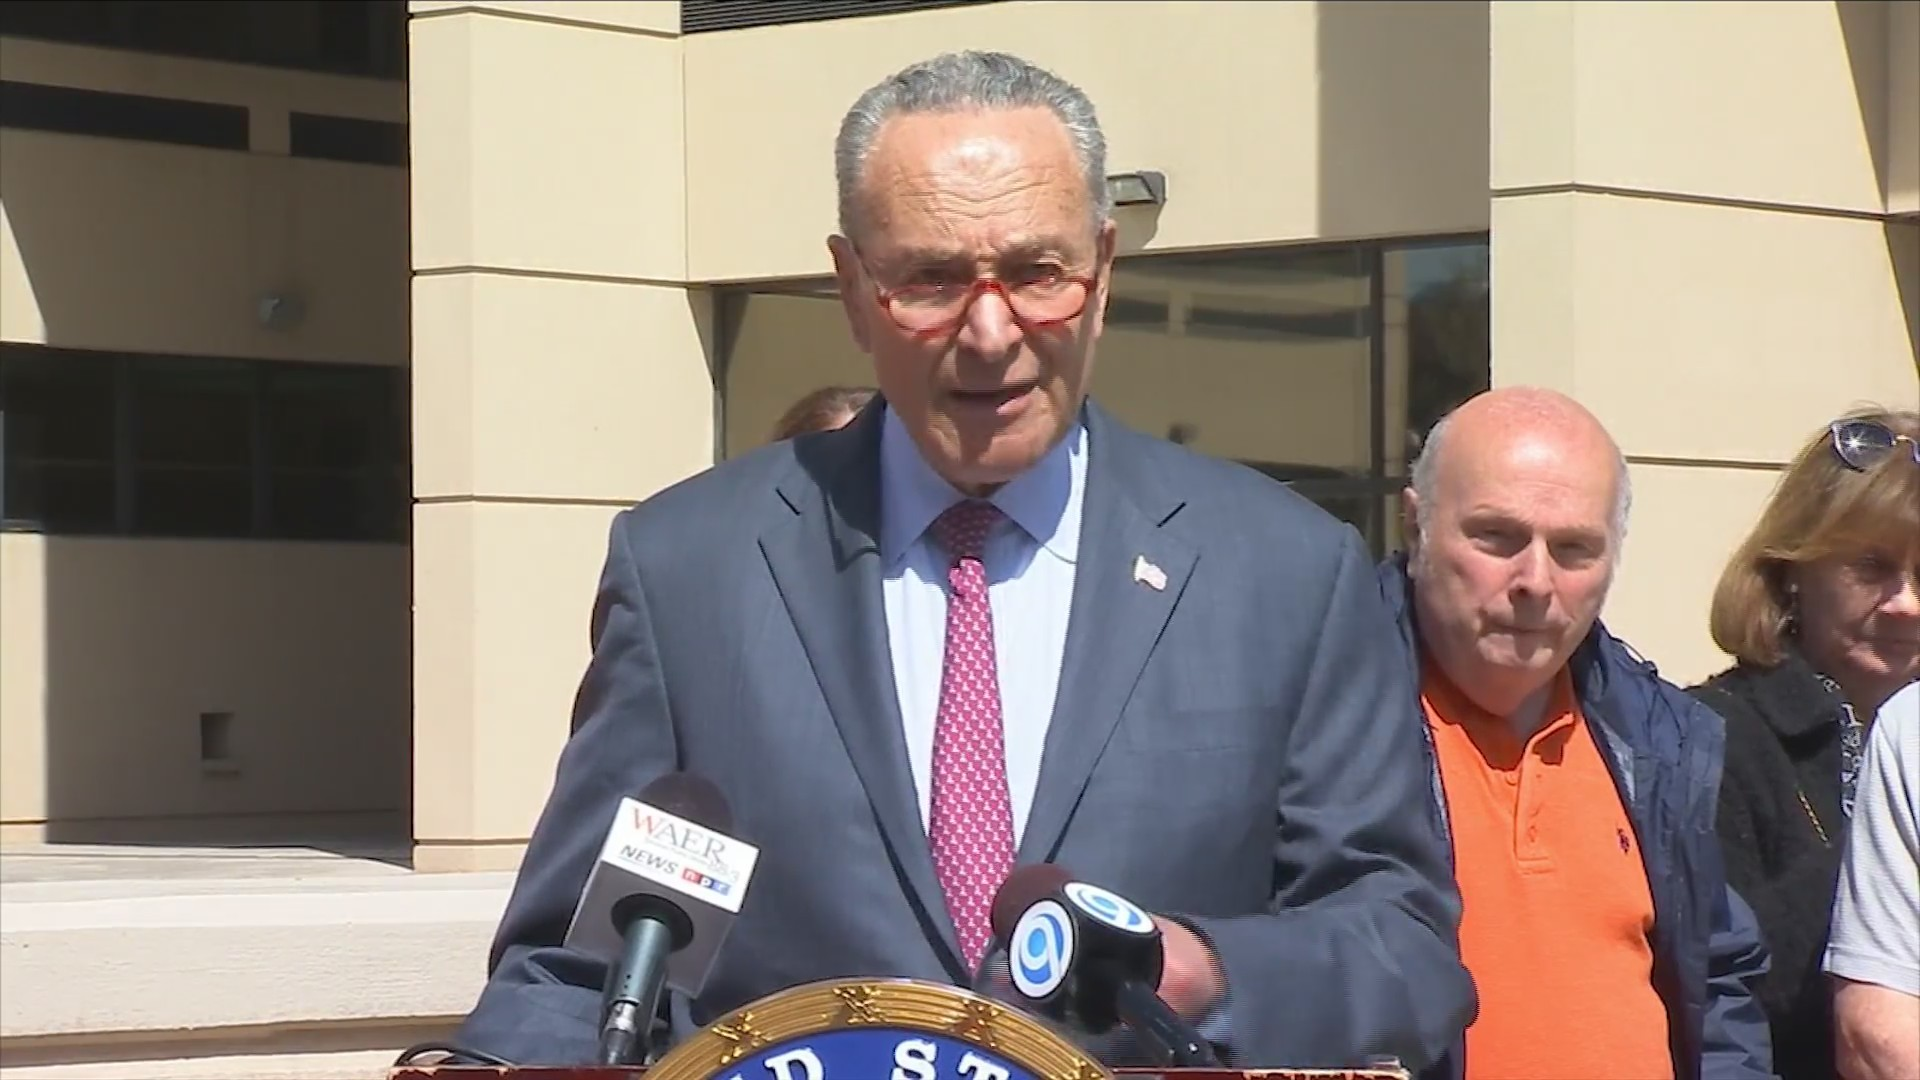 'This will stop it:' Sen. Schumer takes steps to silence robocalls